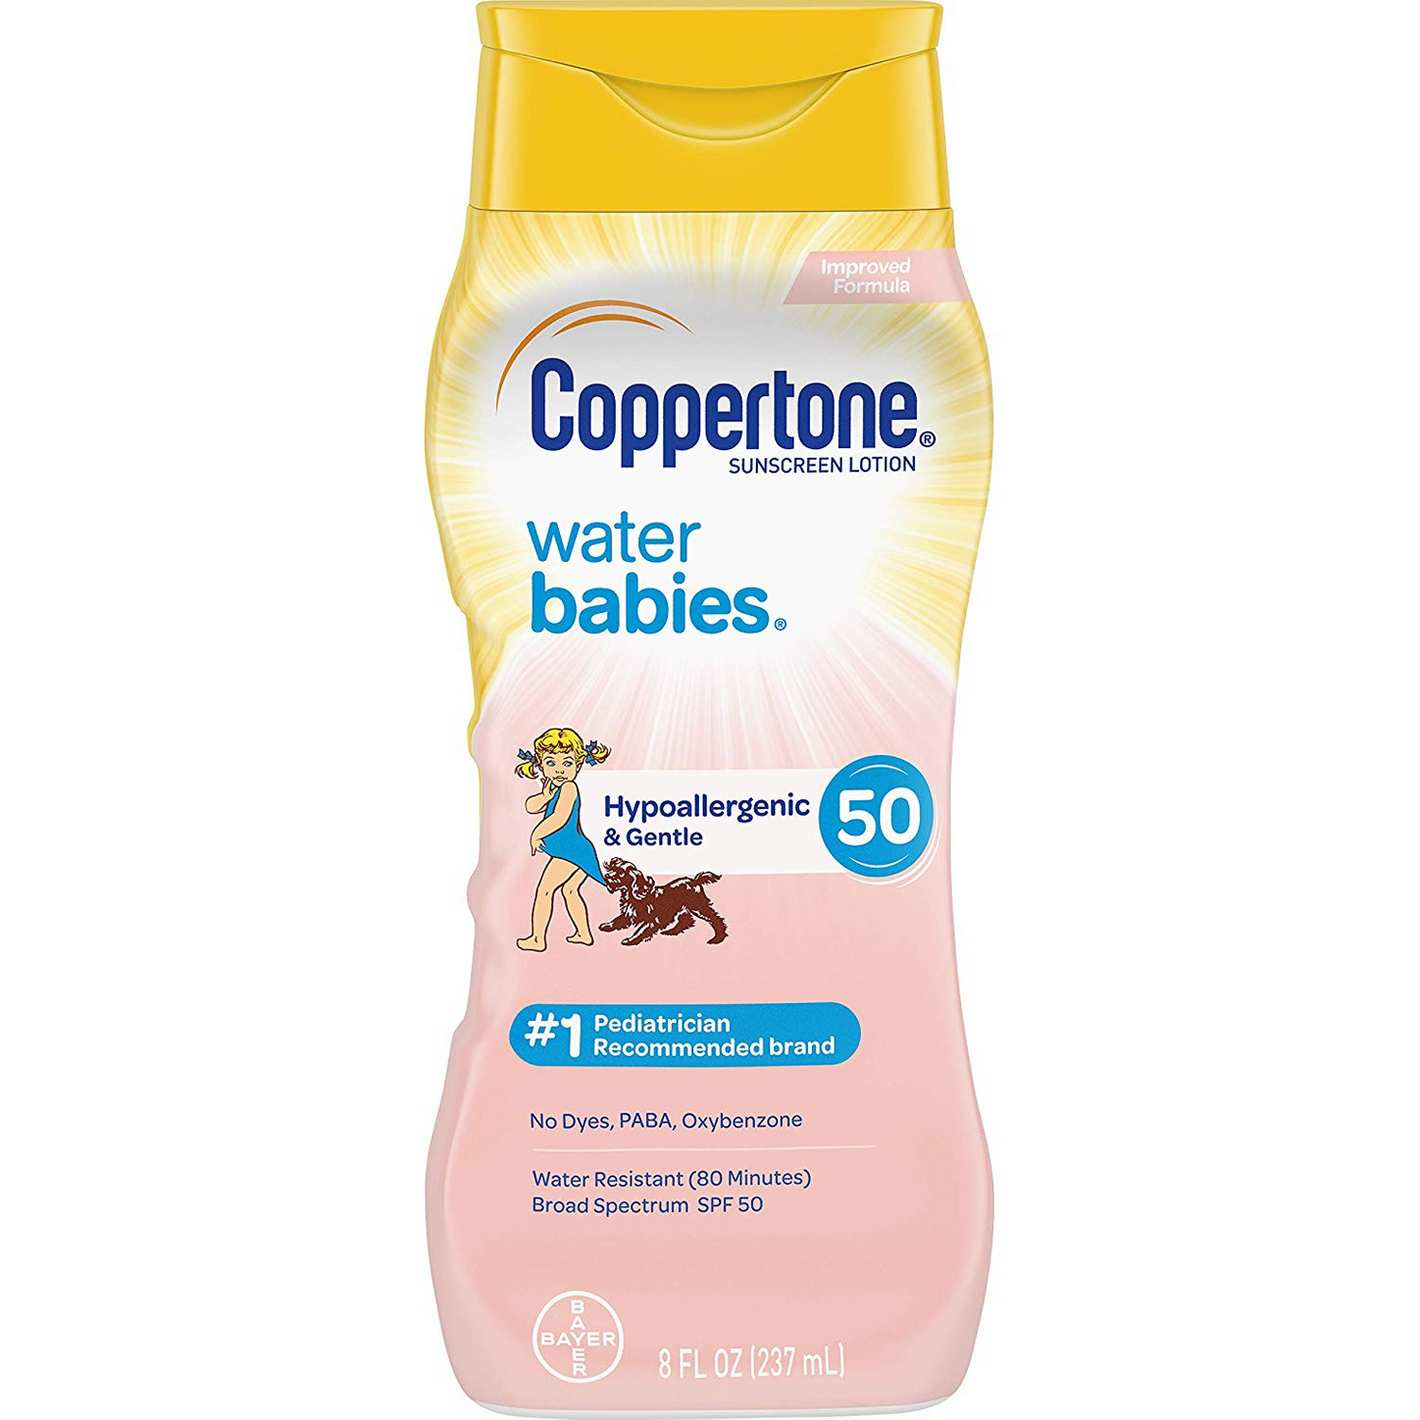 Coppertone WaterBabies Sunscreen Lotion Broad Spectrum SPF 50